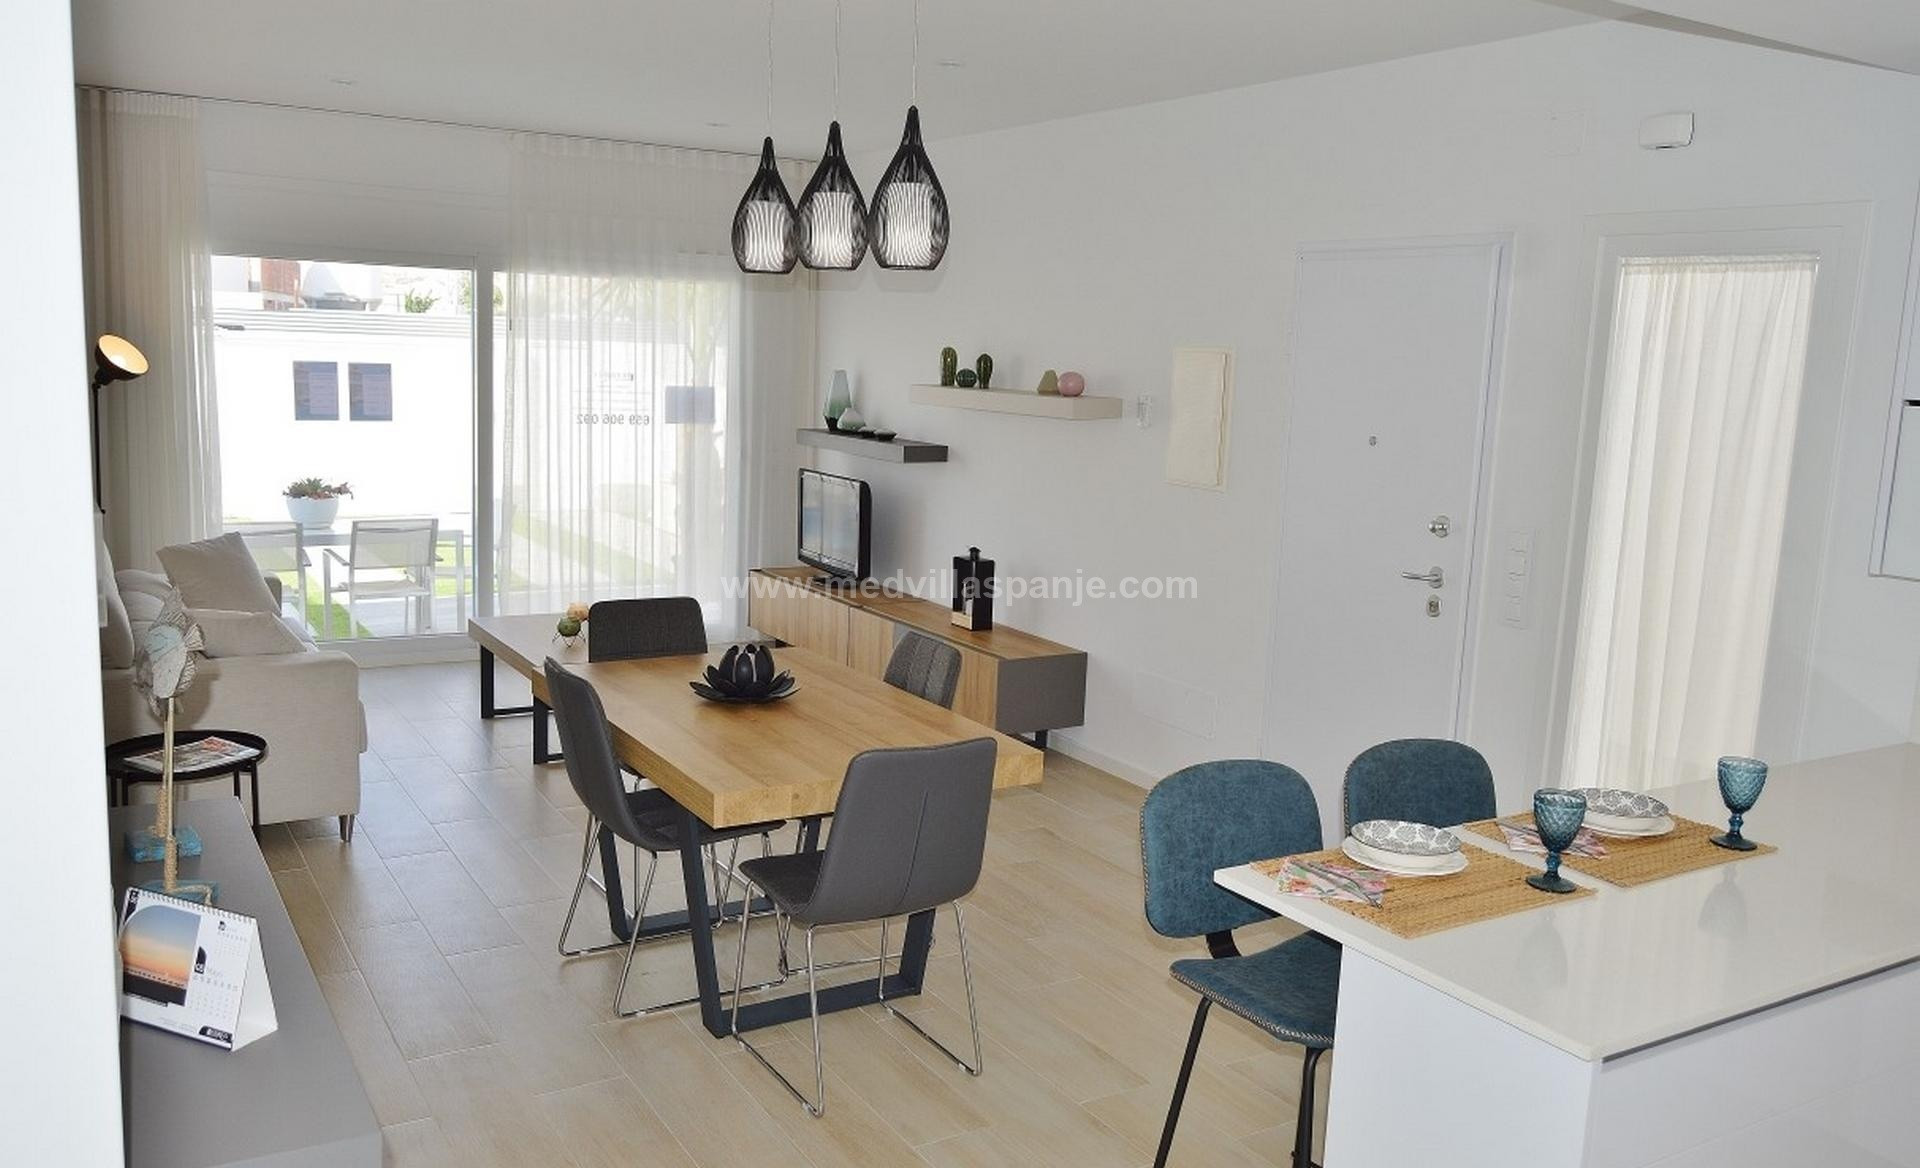 New villas with swimming pool at crazy prices! in Medvilla Spanje